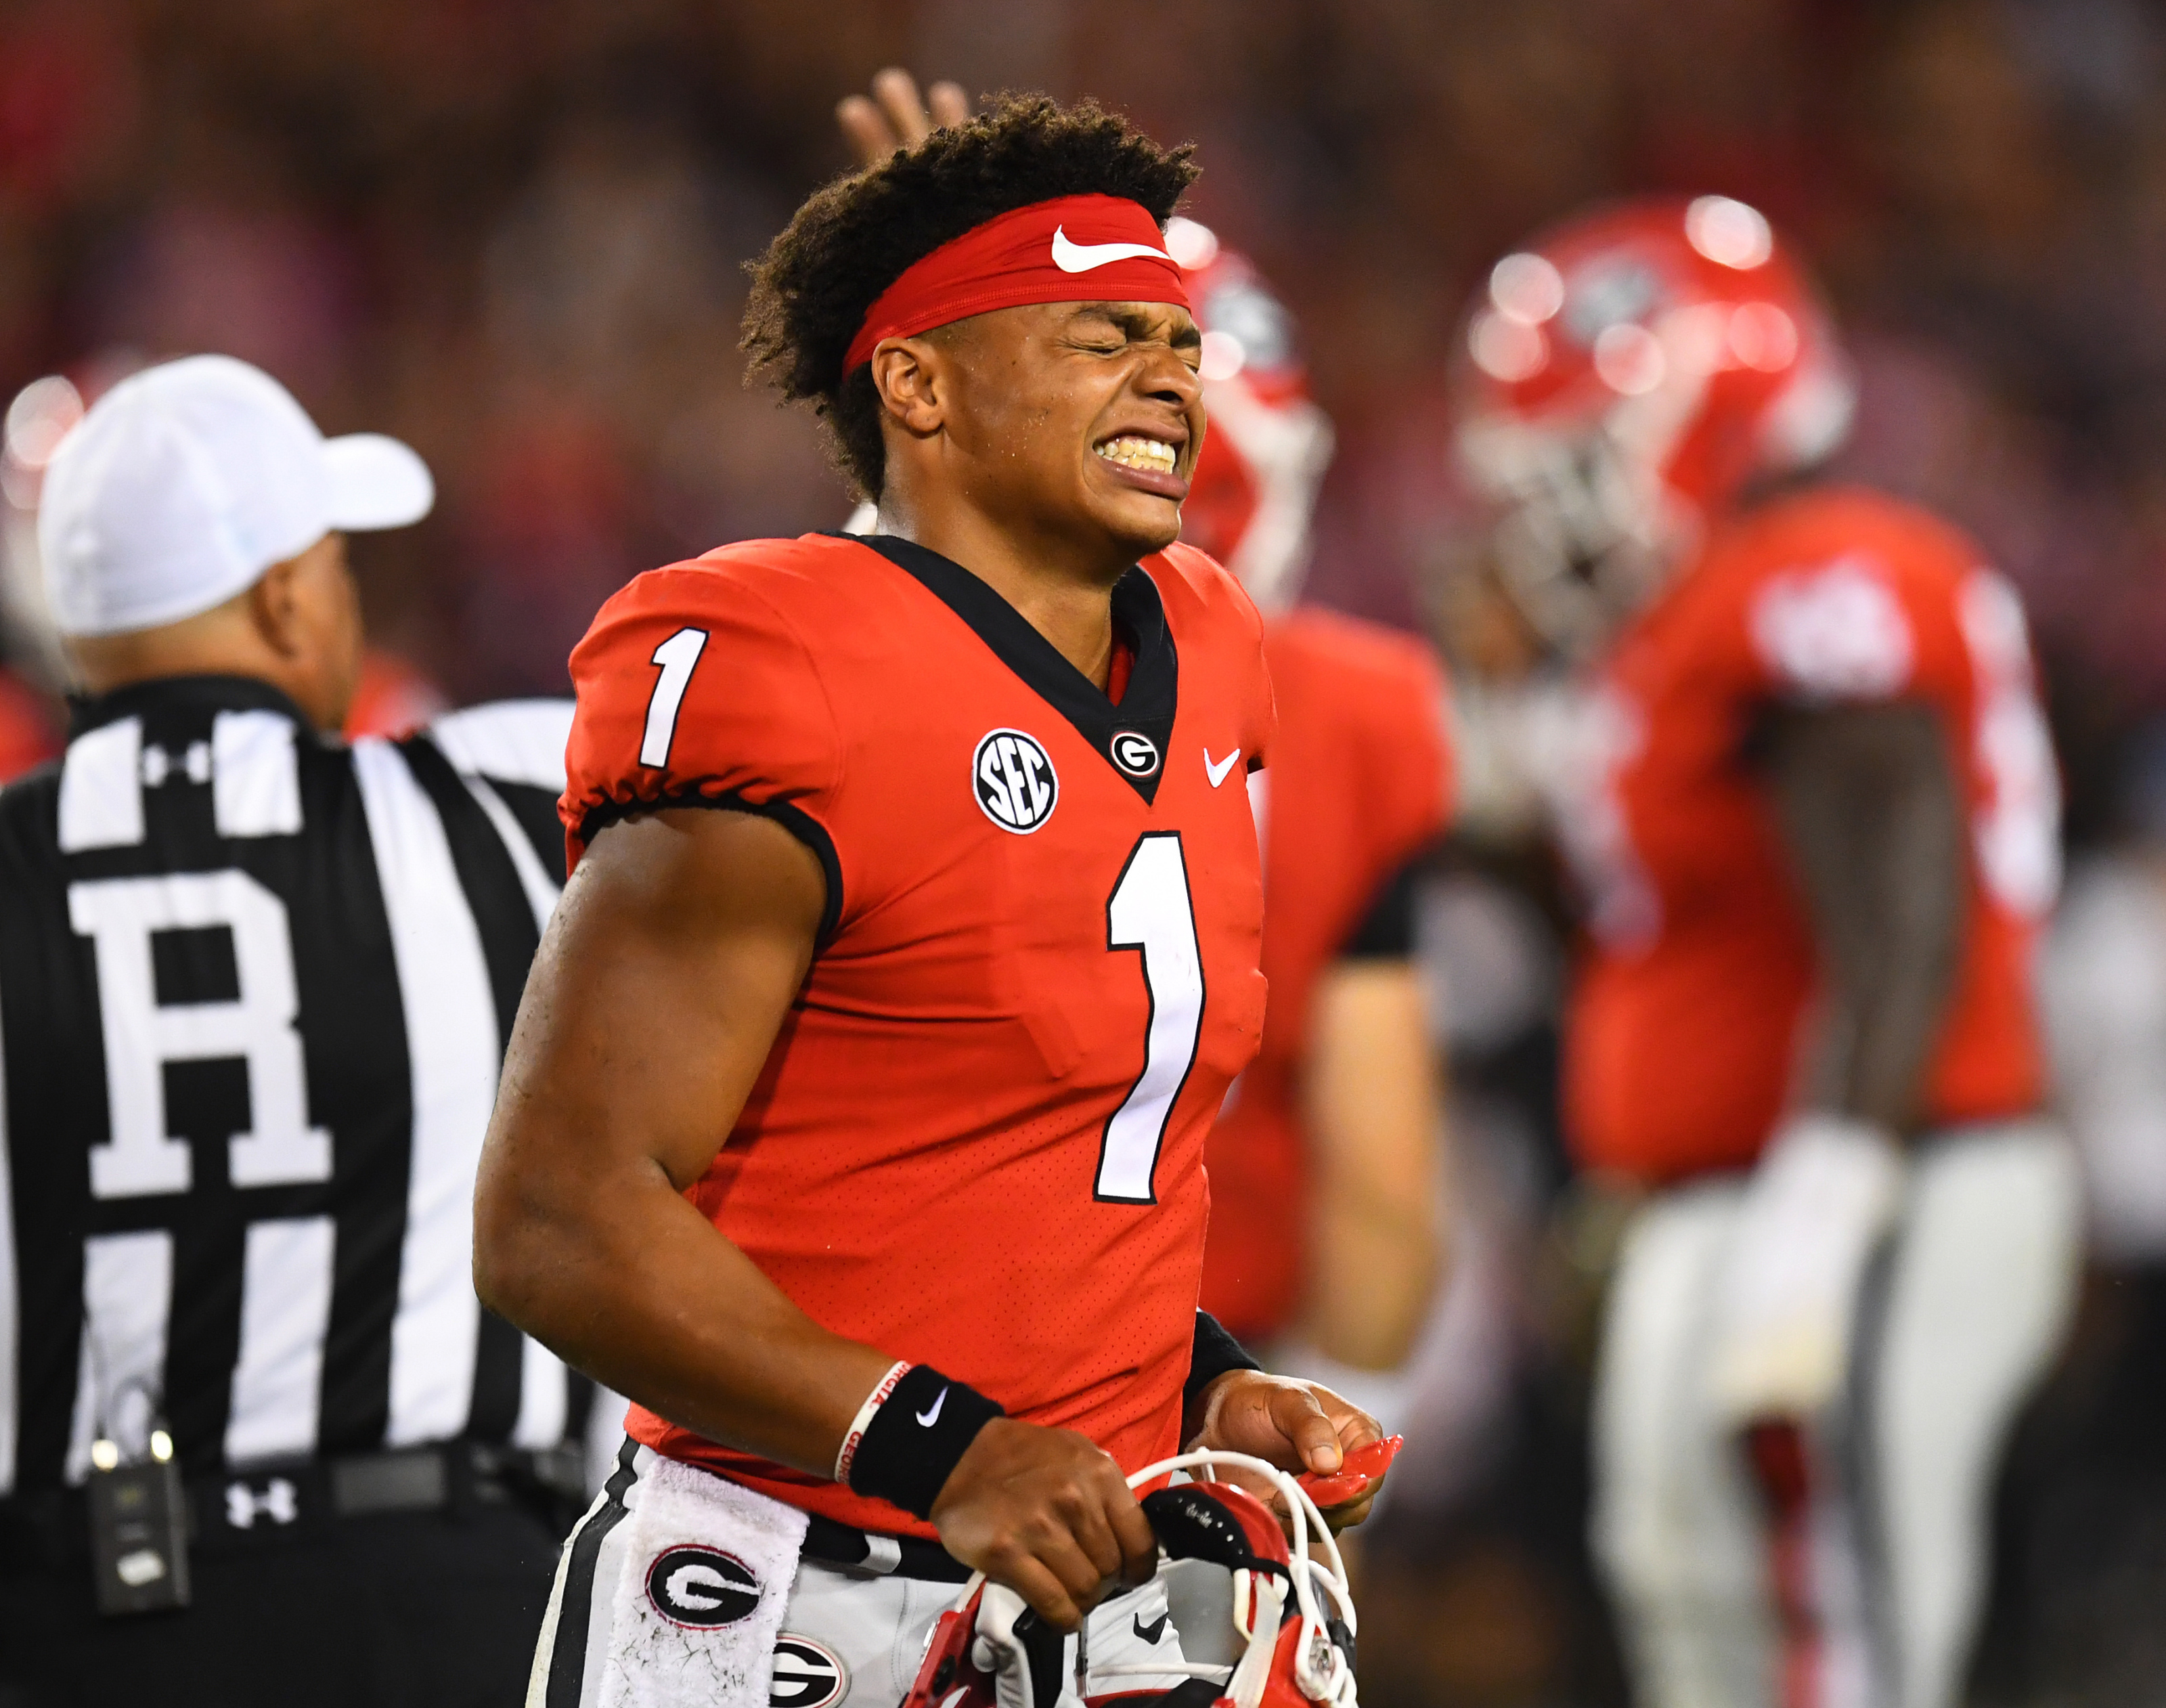 Who is the bet player on the georgia bulldogs fixed odds betting explained further crossword